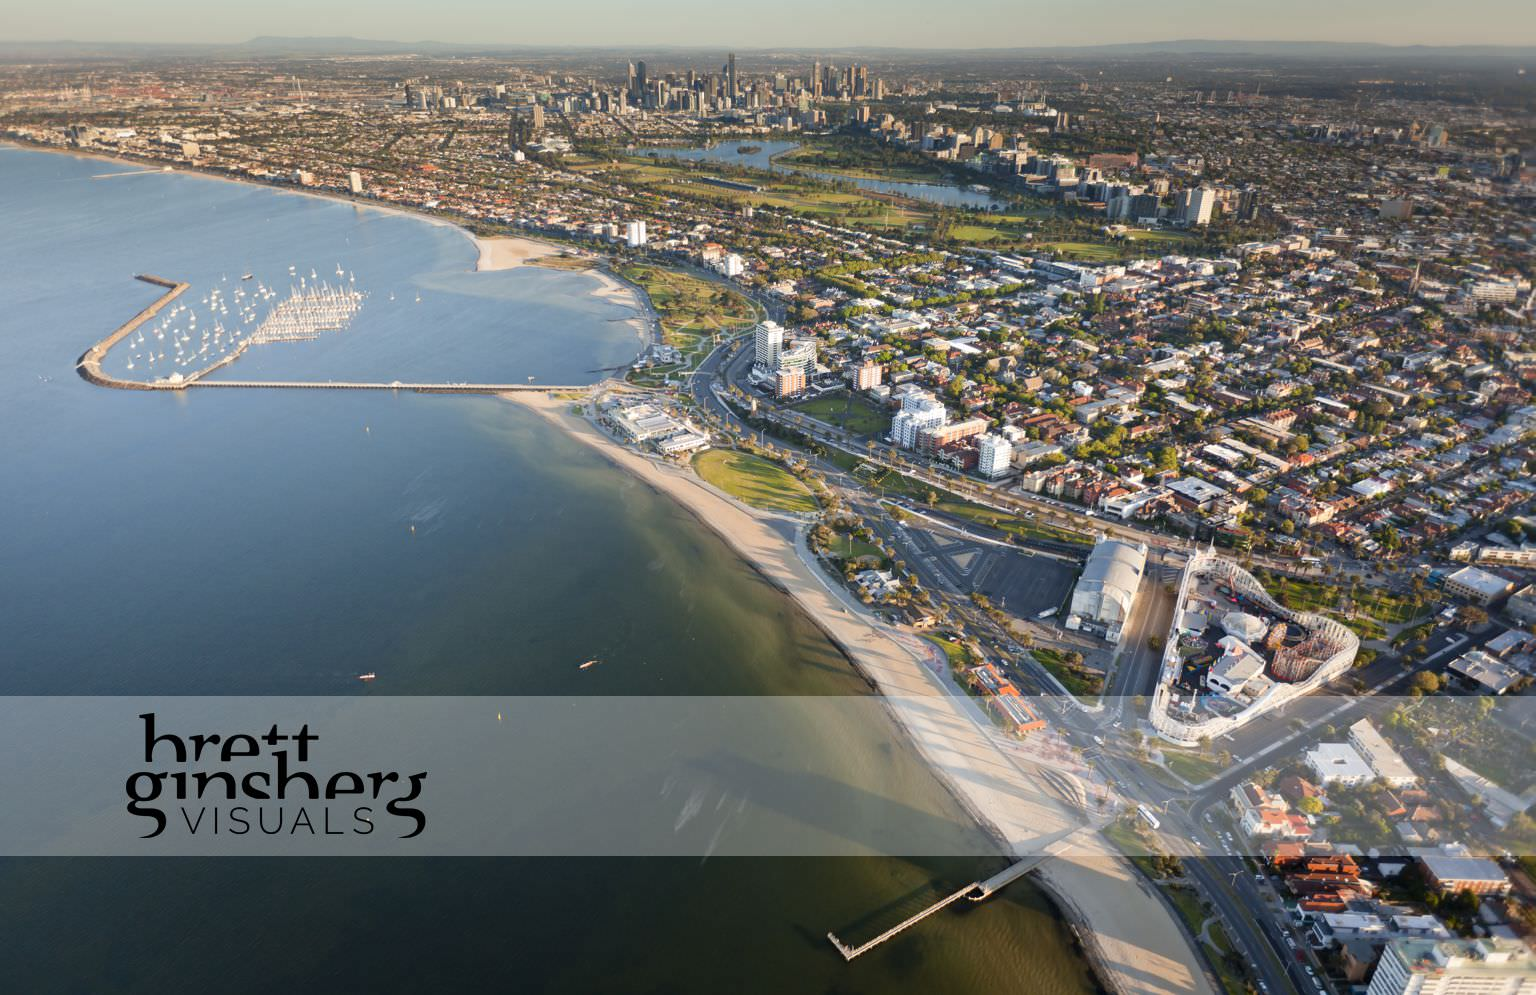 aerial drone photograph of luna park, st kilda pier and marina with city skyline melbourne